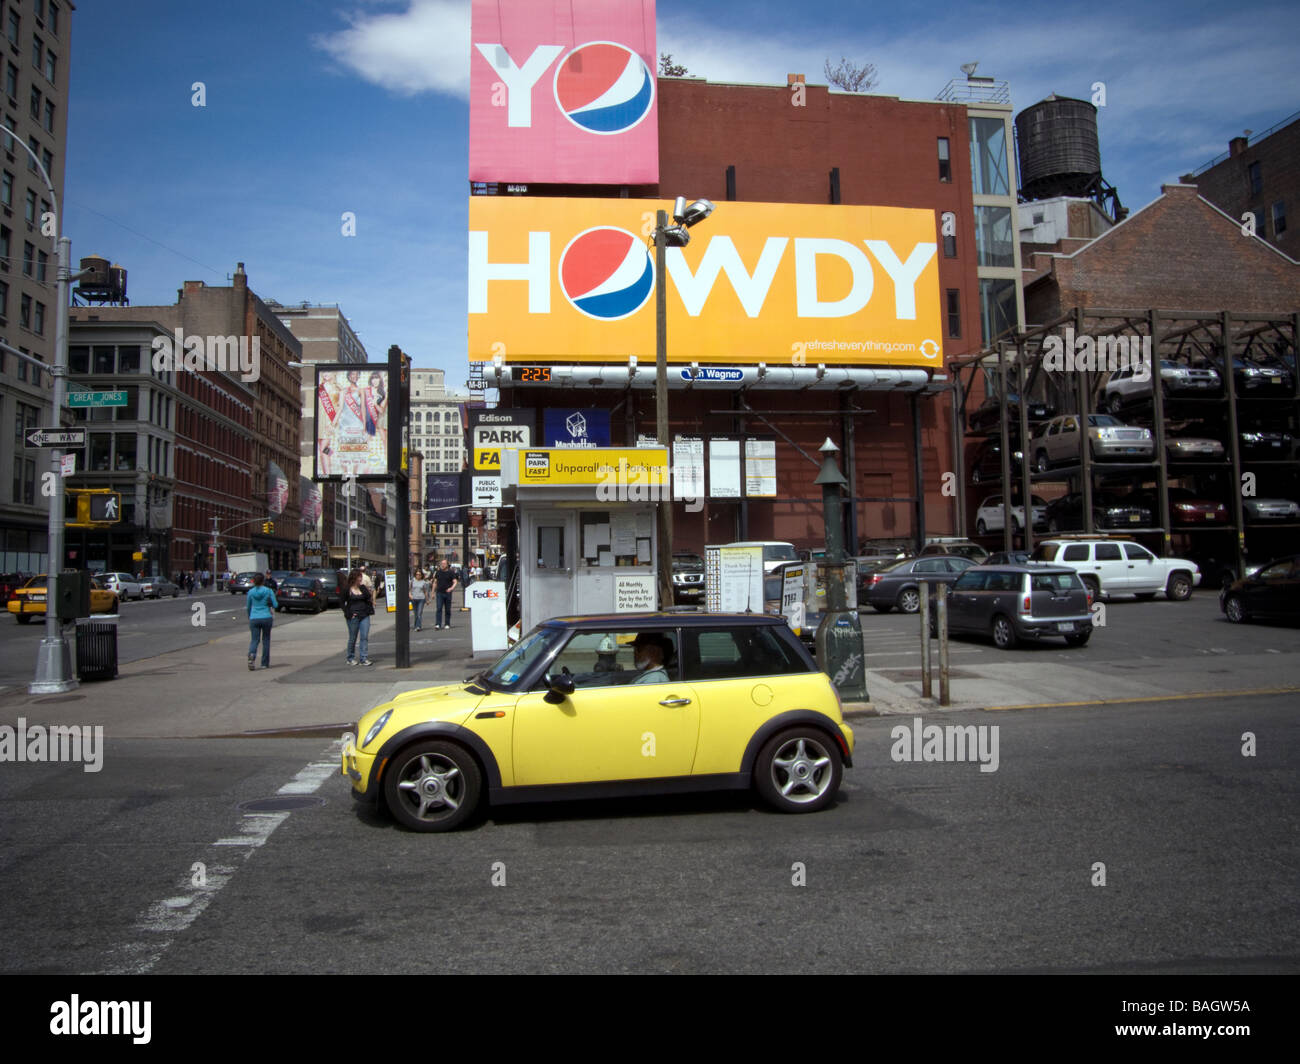 A Mini Cooper in front of an advertisement for Pepsi Cola in the New York neighborhood of NoHo - Stock Image